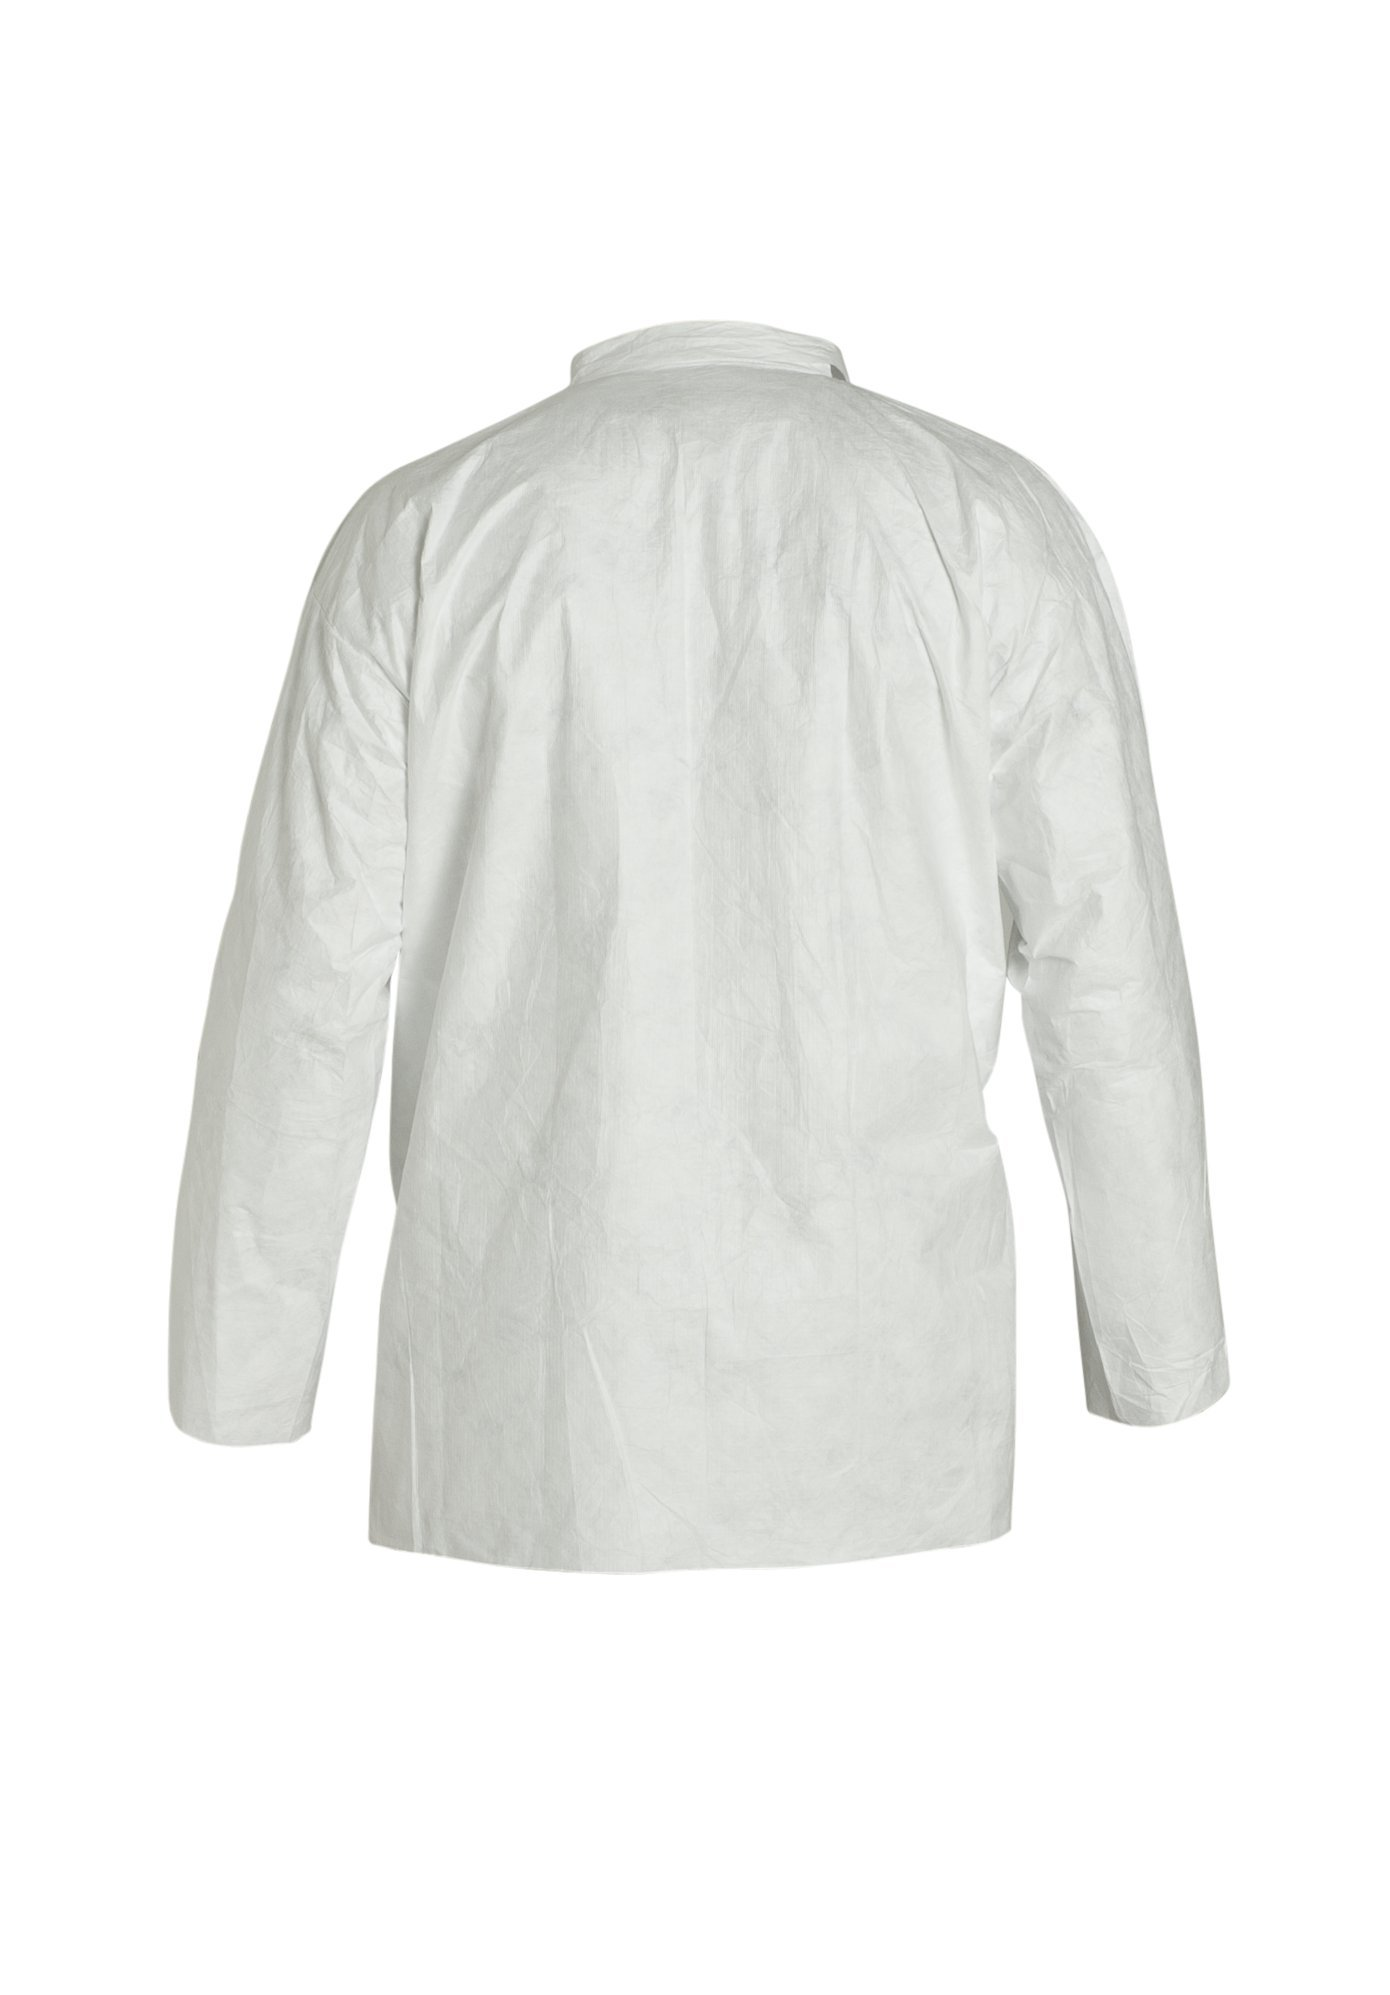 DuPont Tyvek 400 TY303S Disposable Shirt with Open Cuff, White, 2X-Large (Pack of 50) by DuPont (Image #3)